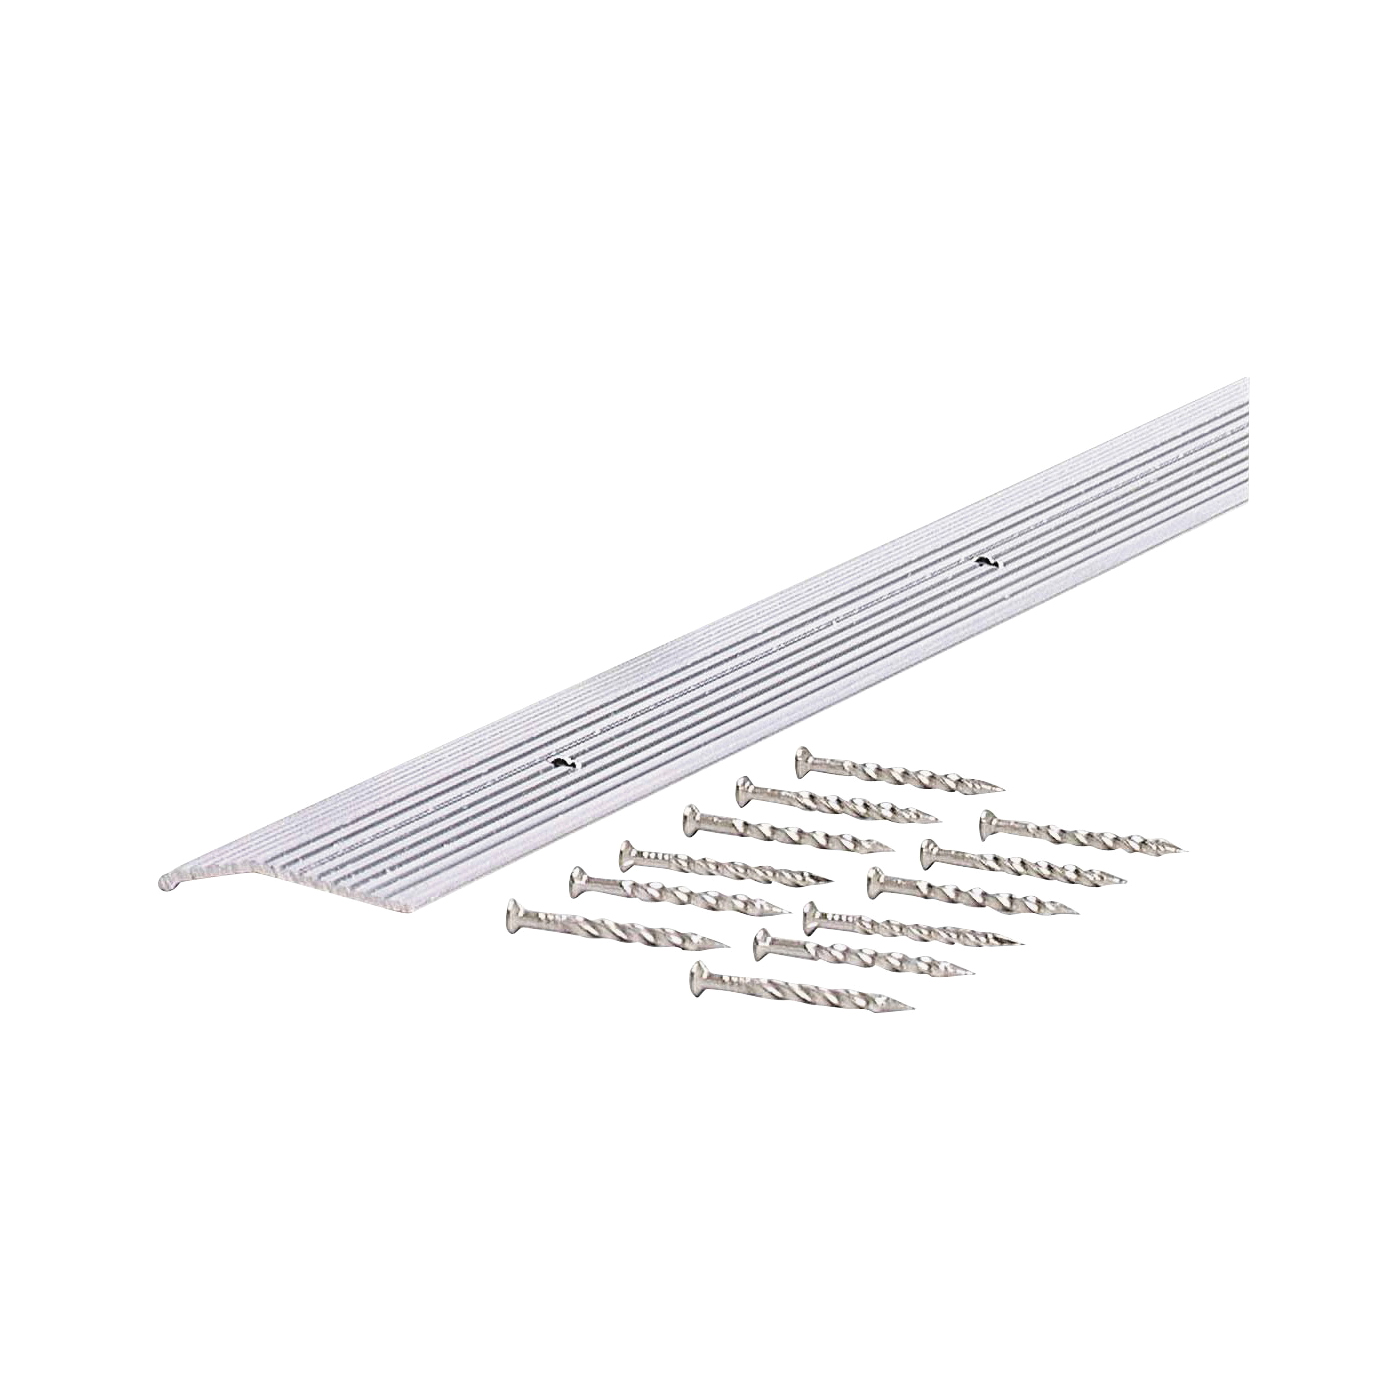 Picture of M-D 78154 Carpet Trim, 72 in L, 1.38 in W, Fluted Surface, Aluminum, Silver